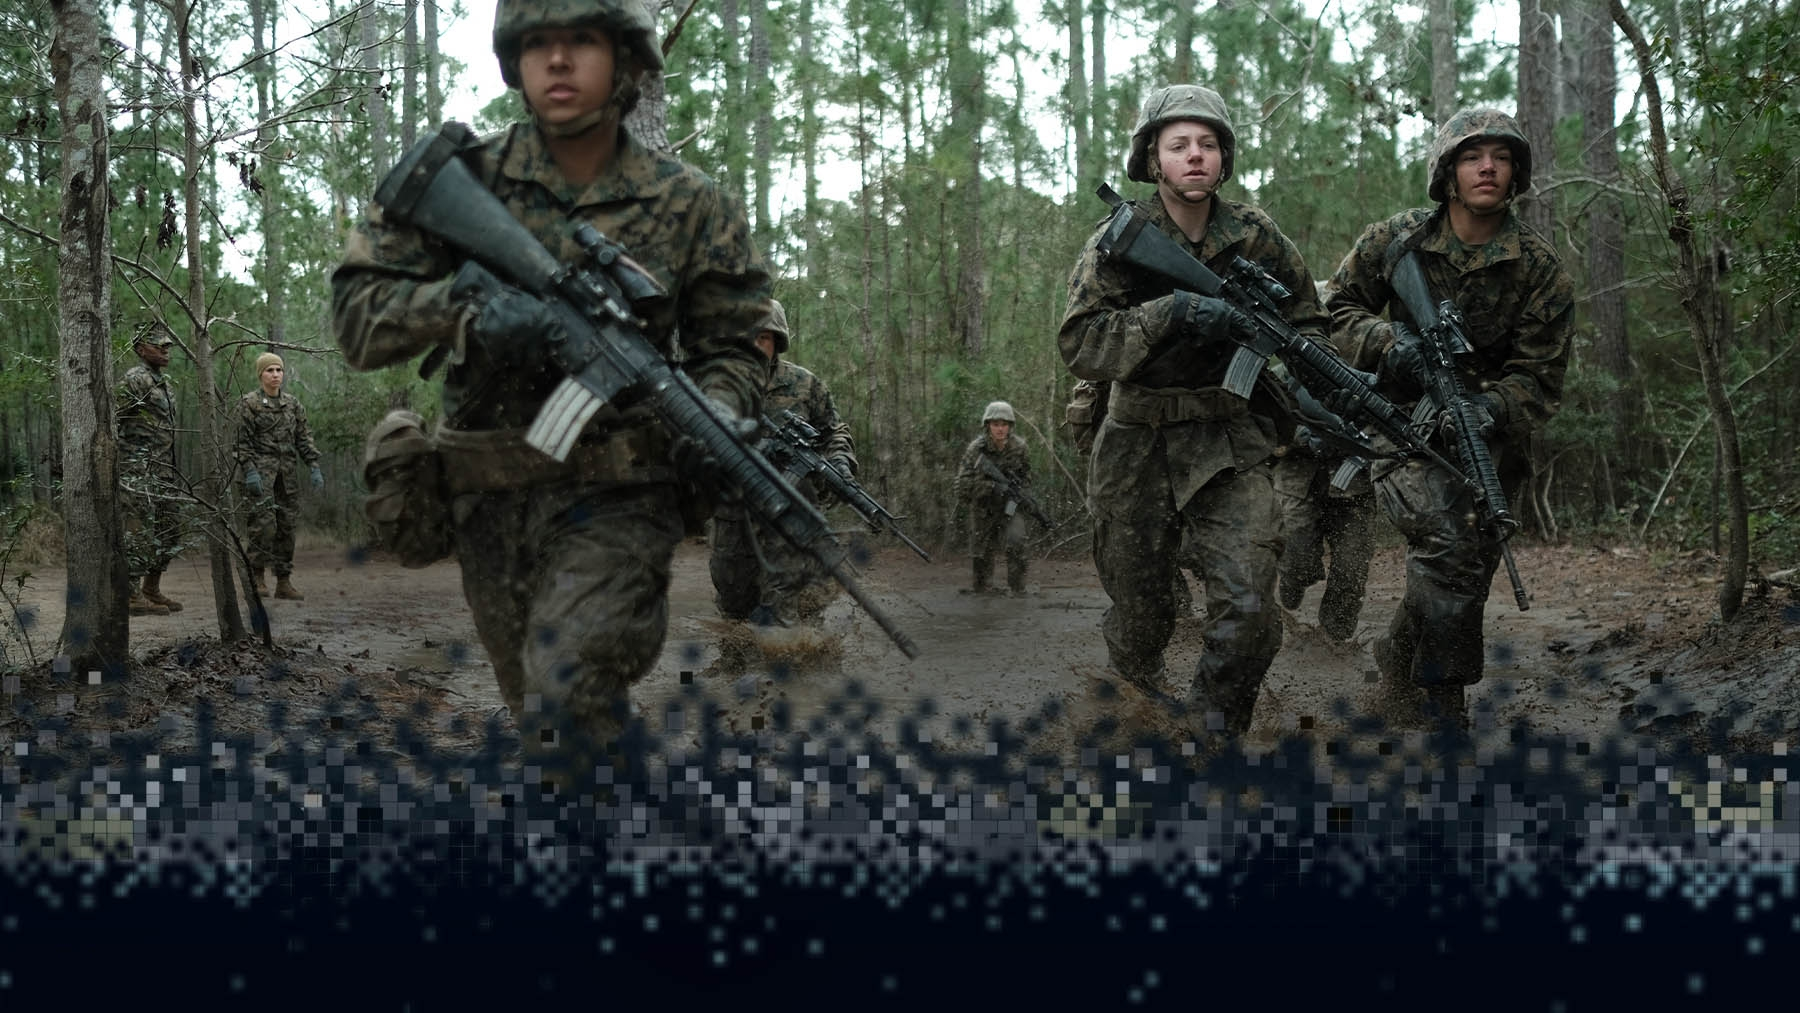 Marine recruits patrol a swamp.